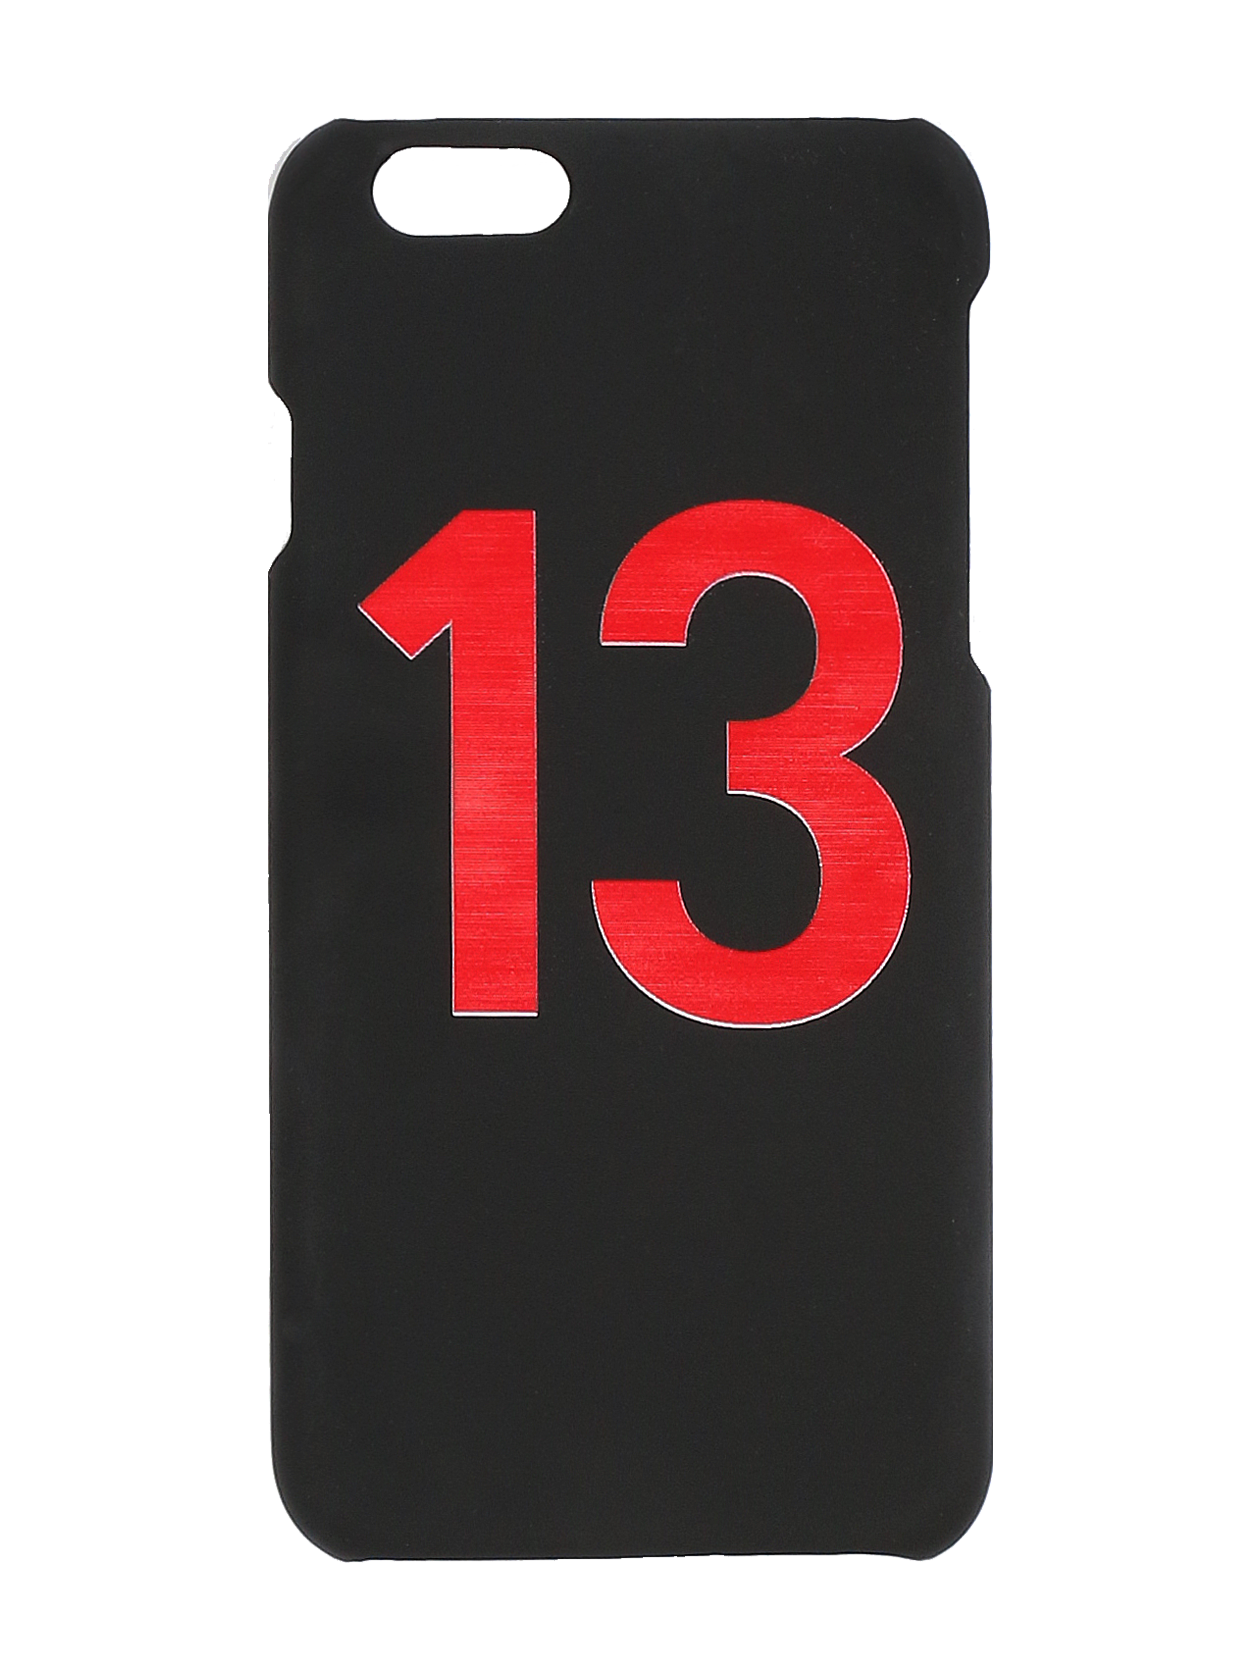 Case for iPhone 5/5s/6/6+ Vintage 13